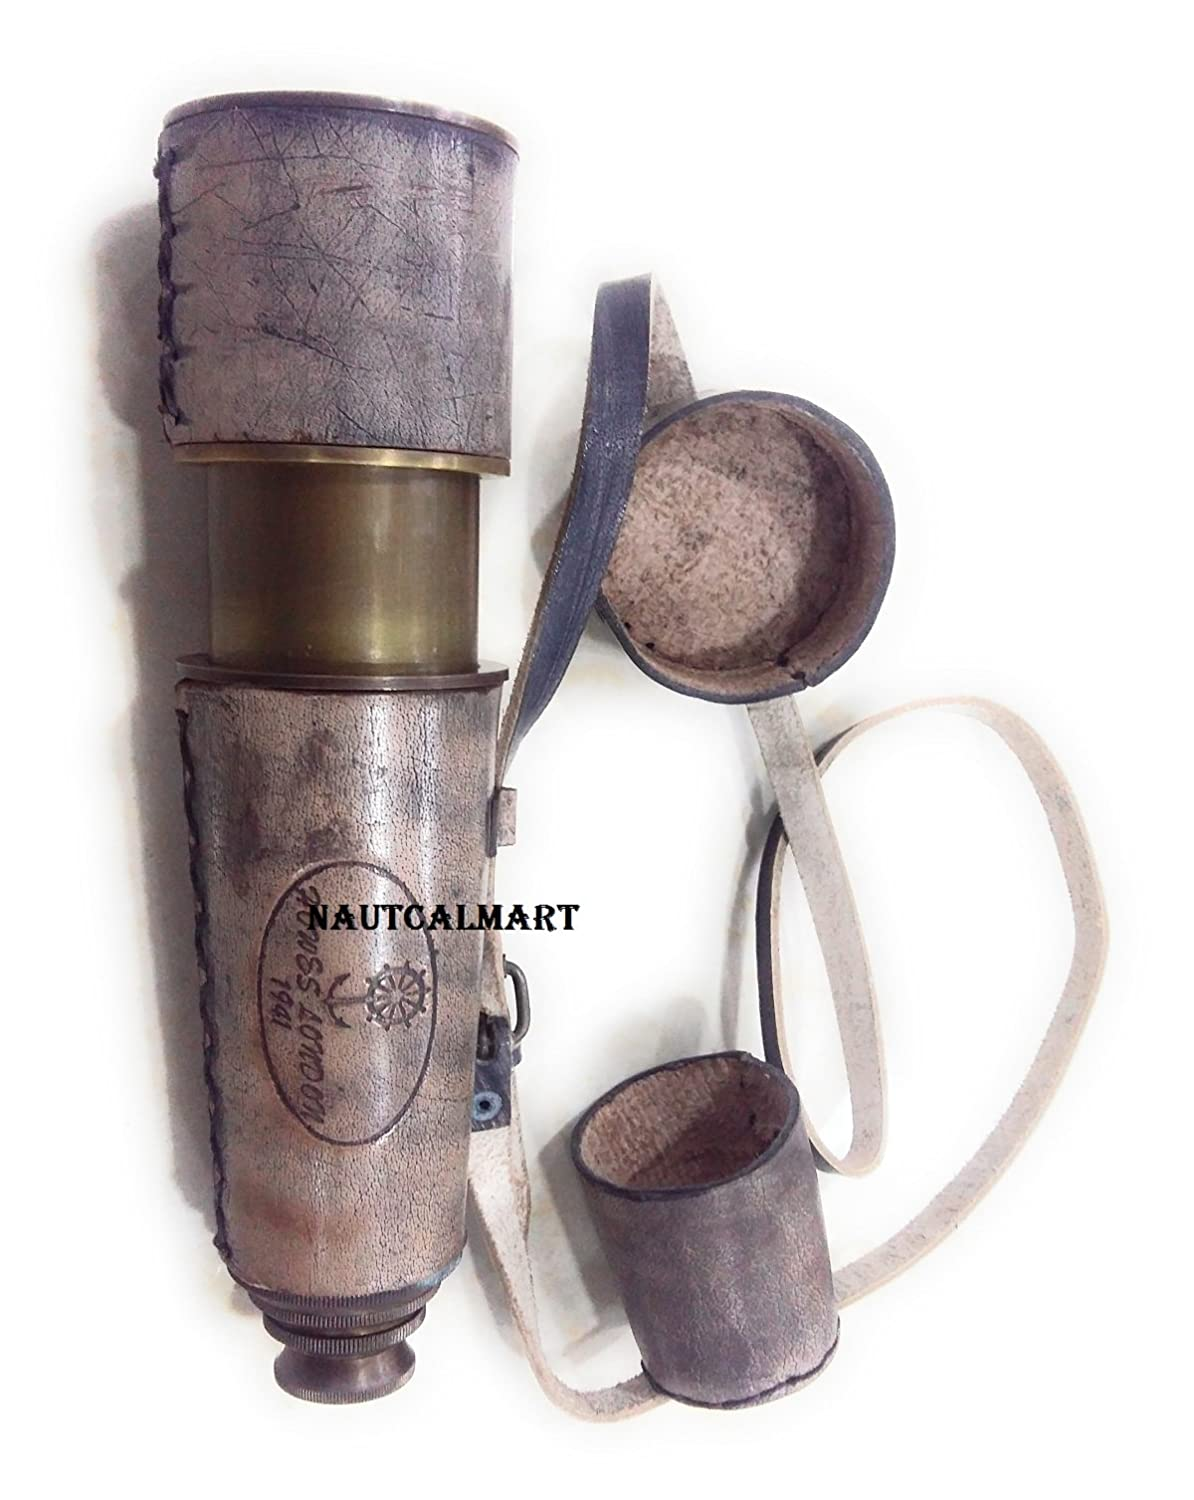 Antique Telescope Engraved  Howes London 1941 from Dollands by Nauticalmart